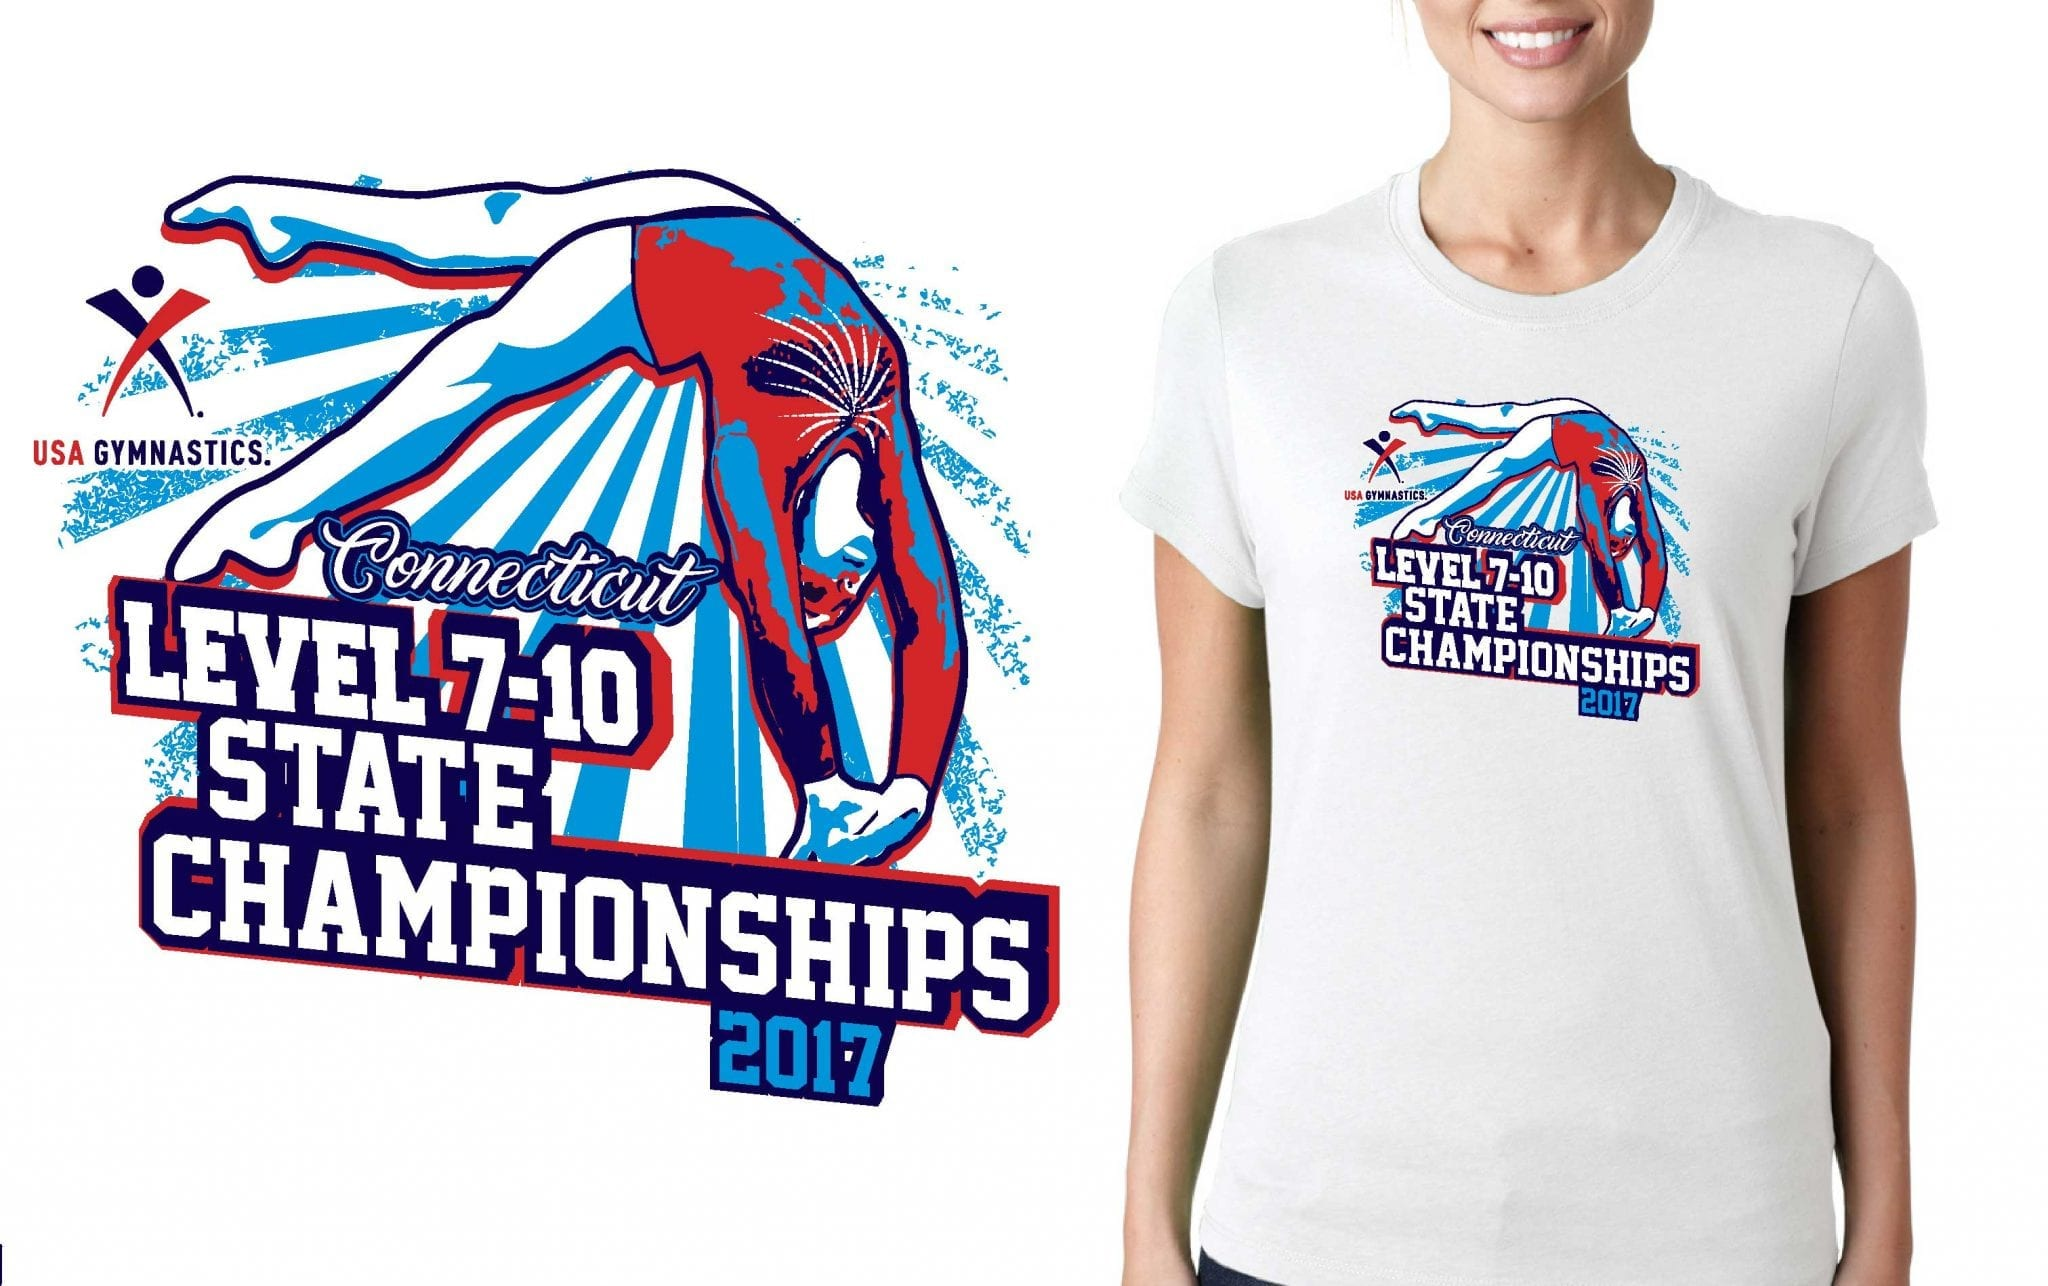 GYMNASTICS T SHIRT LOGO DESIGN CT-Level-7-10-State-Championship BY UrArtStudio